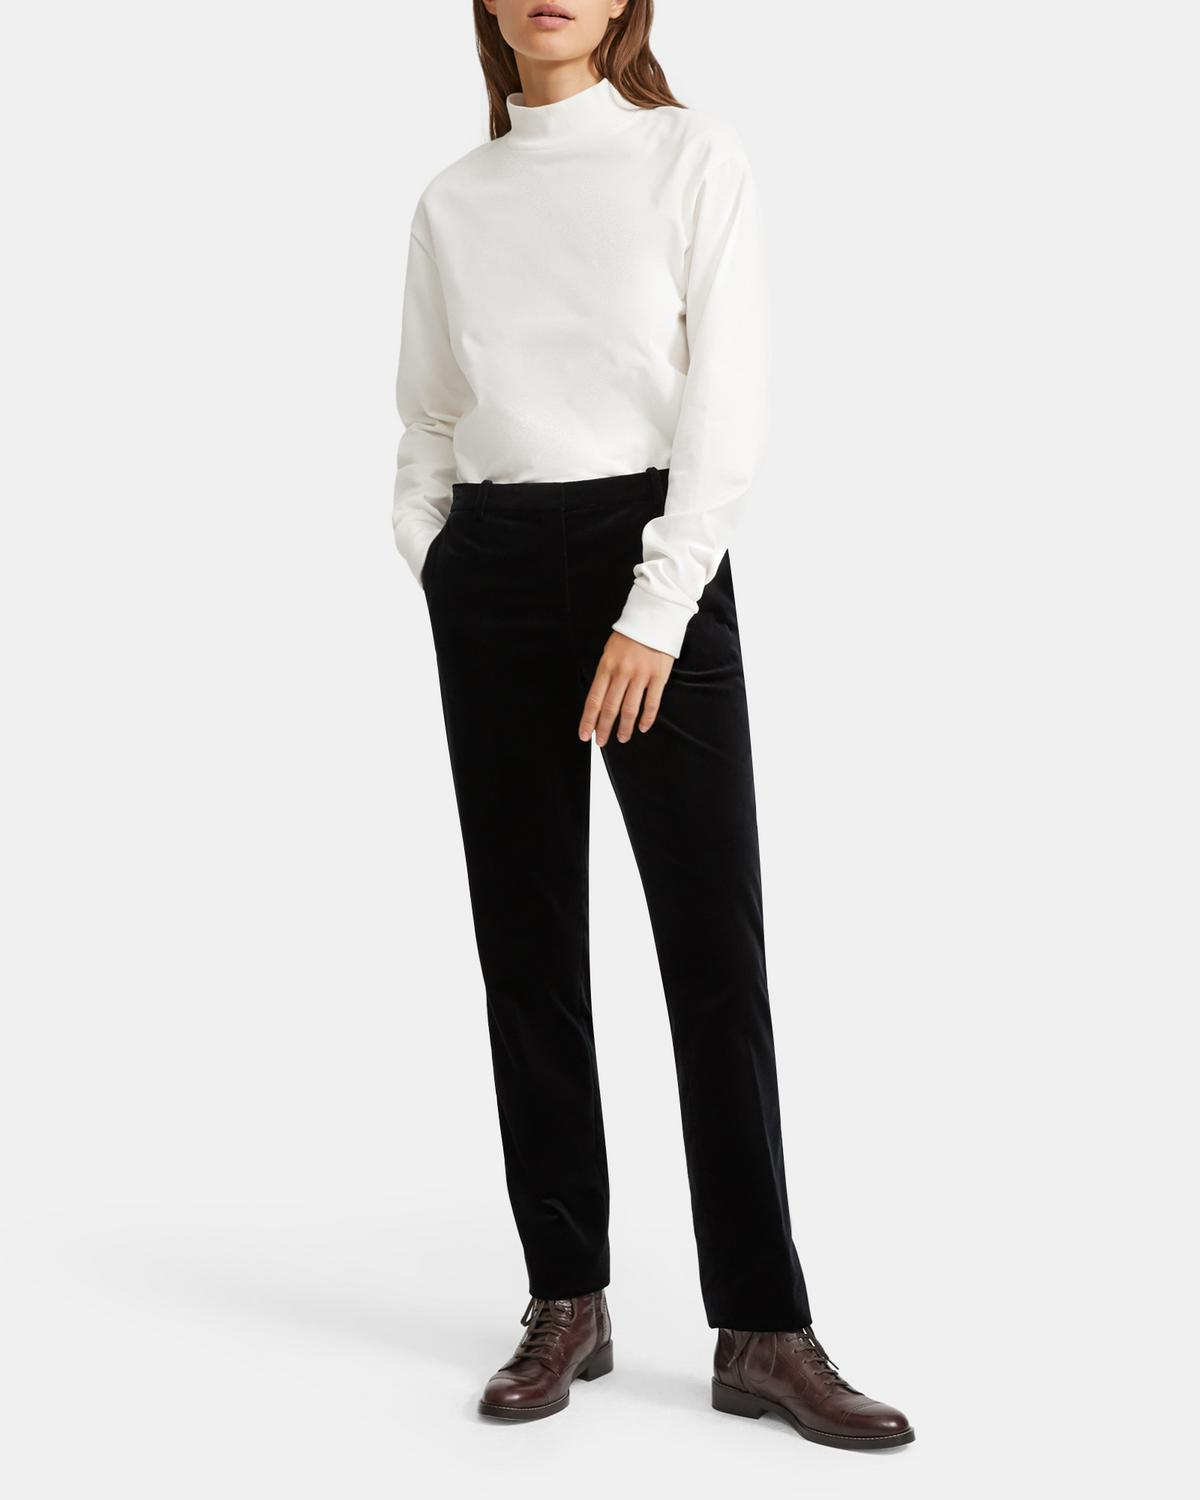 Treeca Full Length Pant in Stretch Velvet